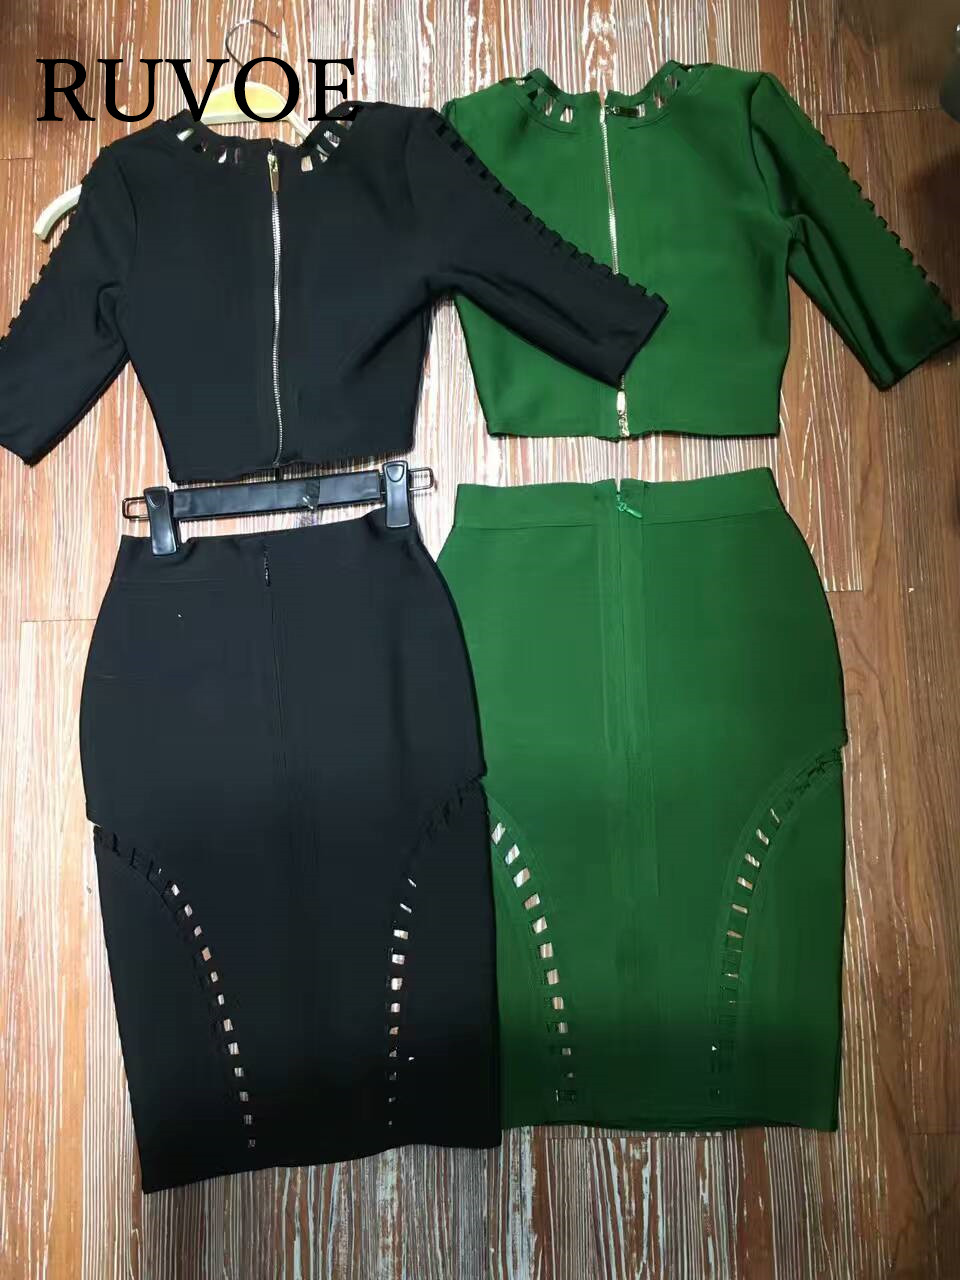 Women 2 two pieces set black and green half sleeve V neck elegant evening party prom